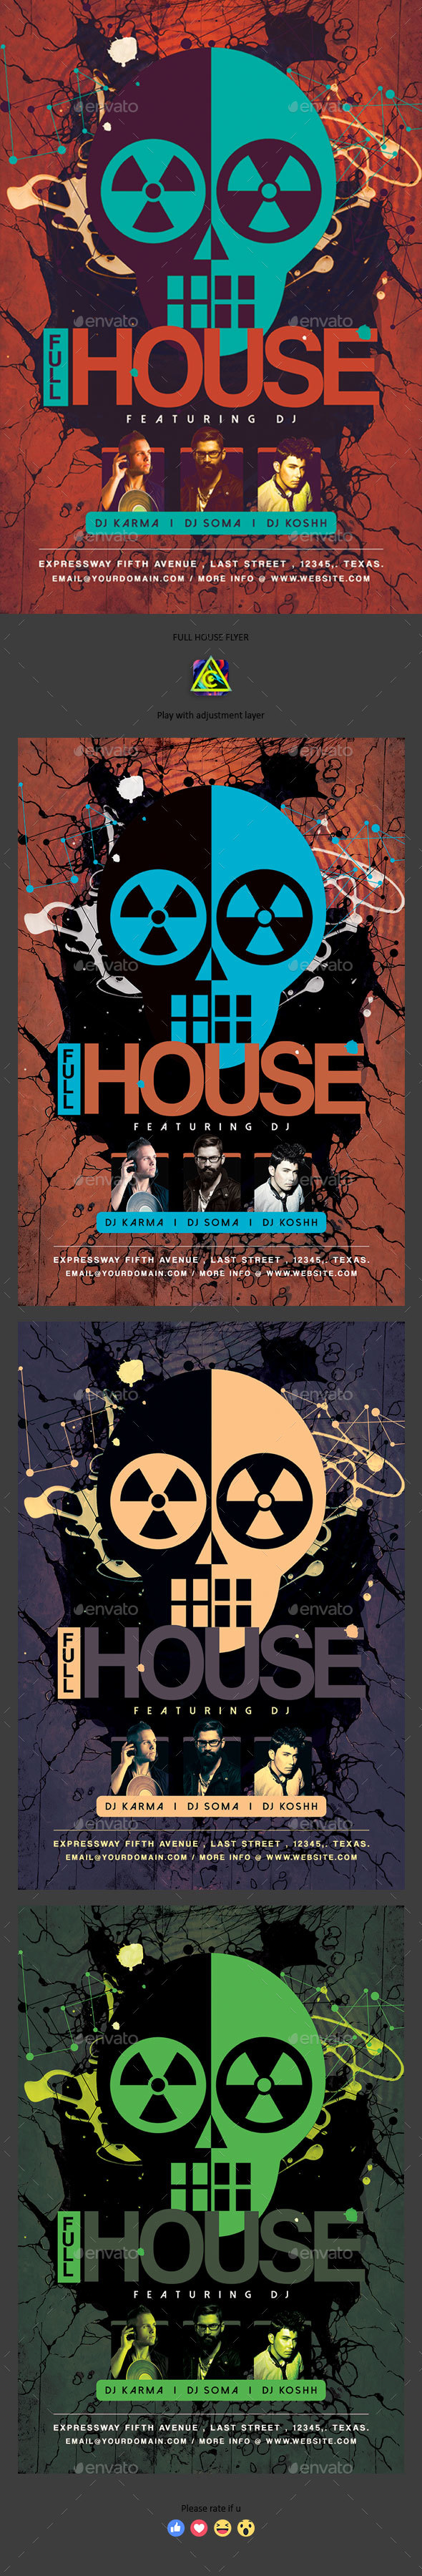 Full House Flyer - Clubs & Parties Events